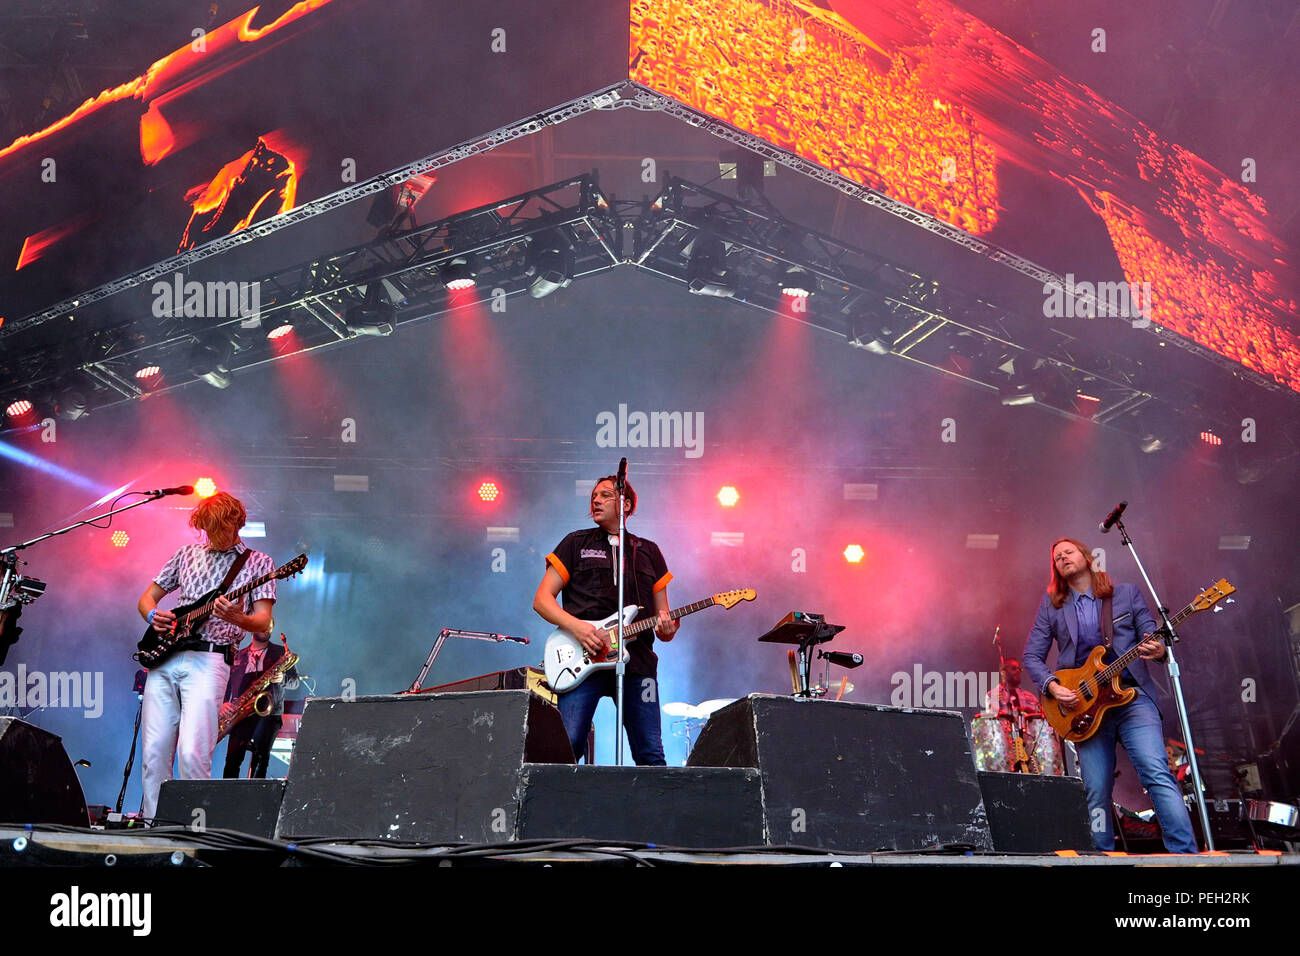 Berlin, Deutschland. 13th Aug, 2018. Richard Parry, Colin Stetson, Win Butler and Tim Kingsbury of Arcade Fire live at the Citadel Music Festival on the Spandau Citadel. Berlin, 13.08.2018 | usage worldwide Credit: dpa/Alamy Live News - Stock Image